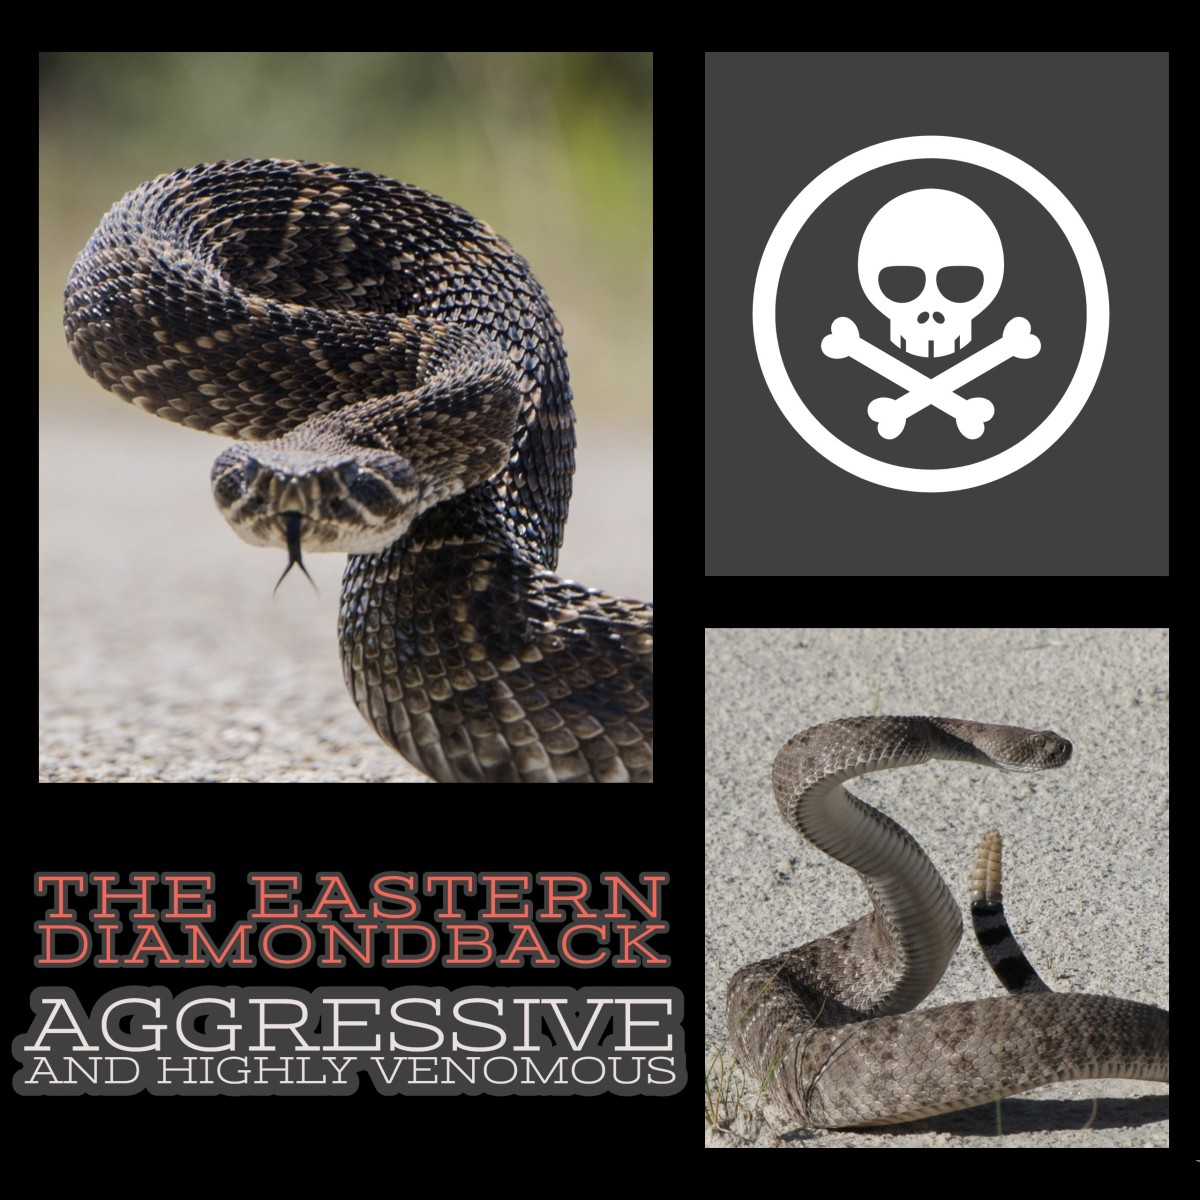 The Eastern Diamondback: Aggressive and Highly Venomous